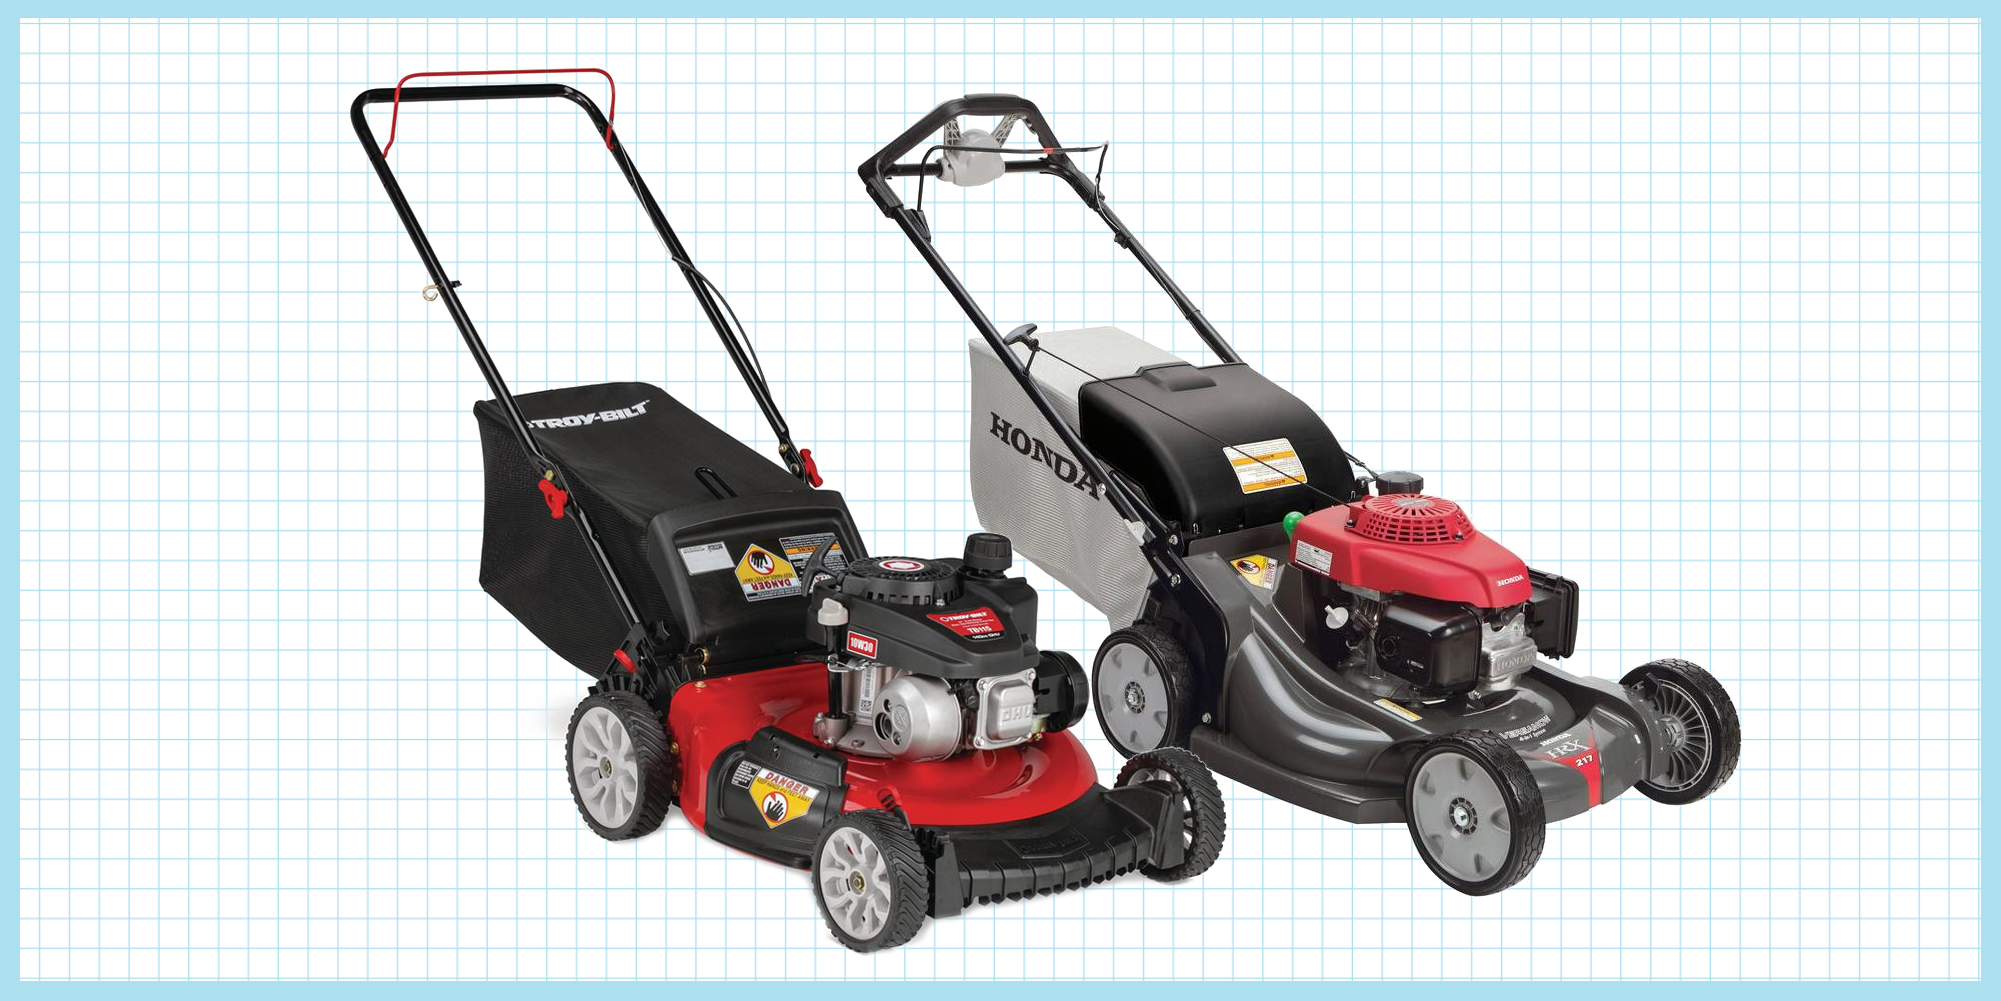 5 Best Lawnmowers to Buy in 2019 - Top Rated Lawnmowers